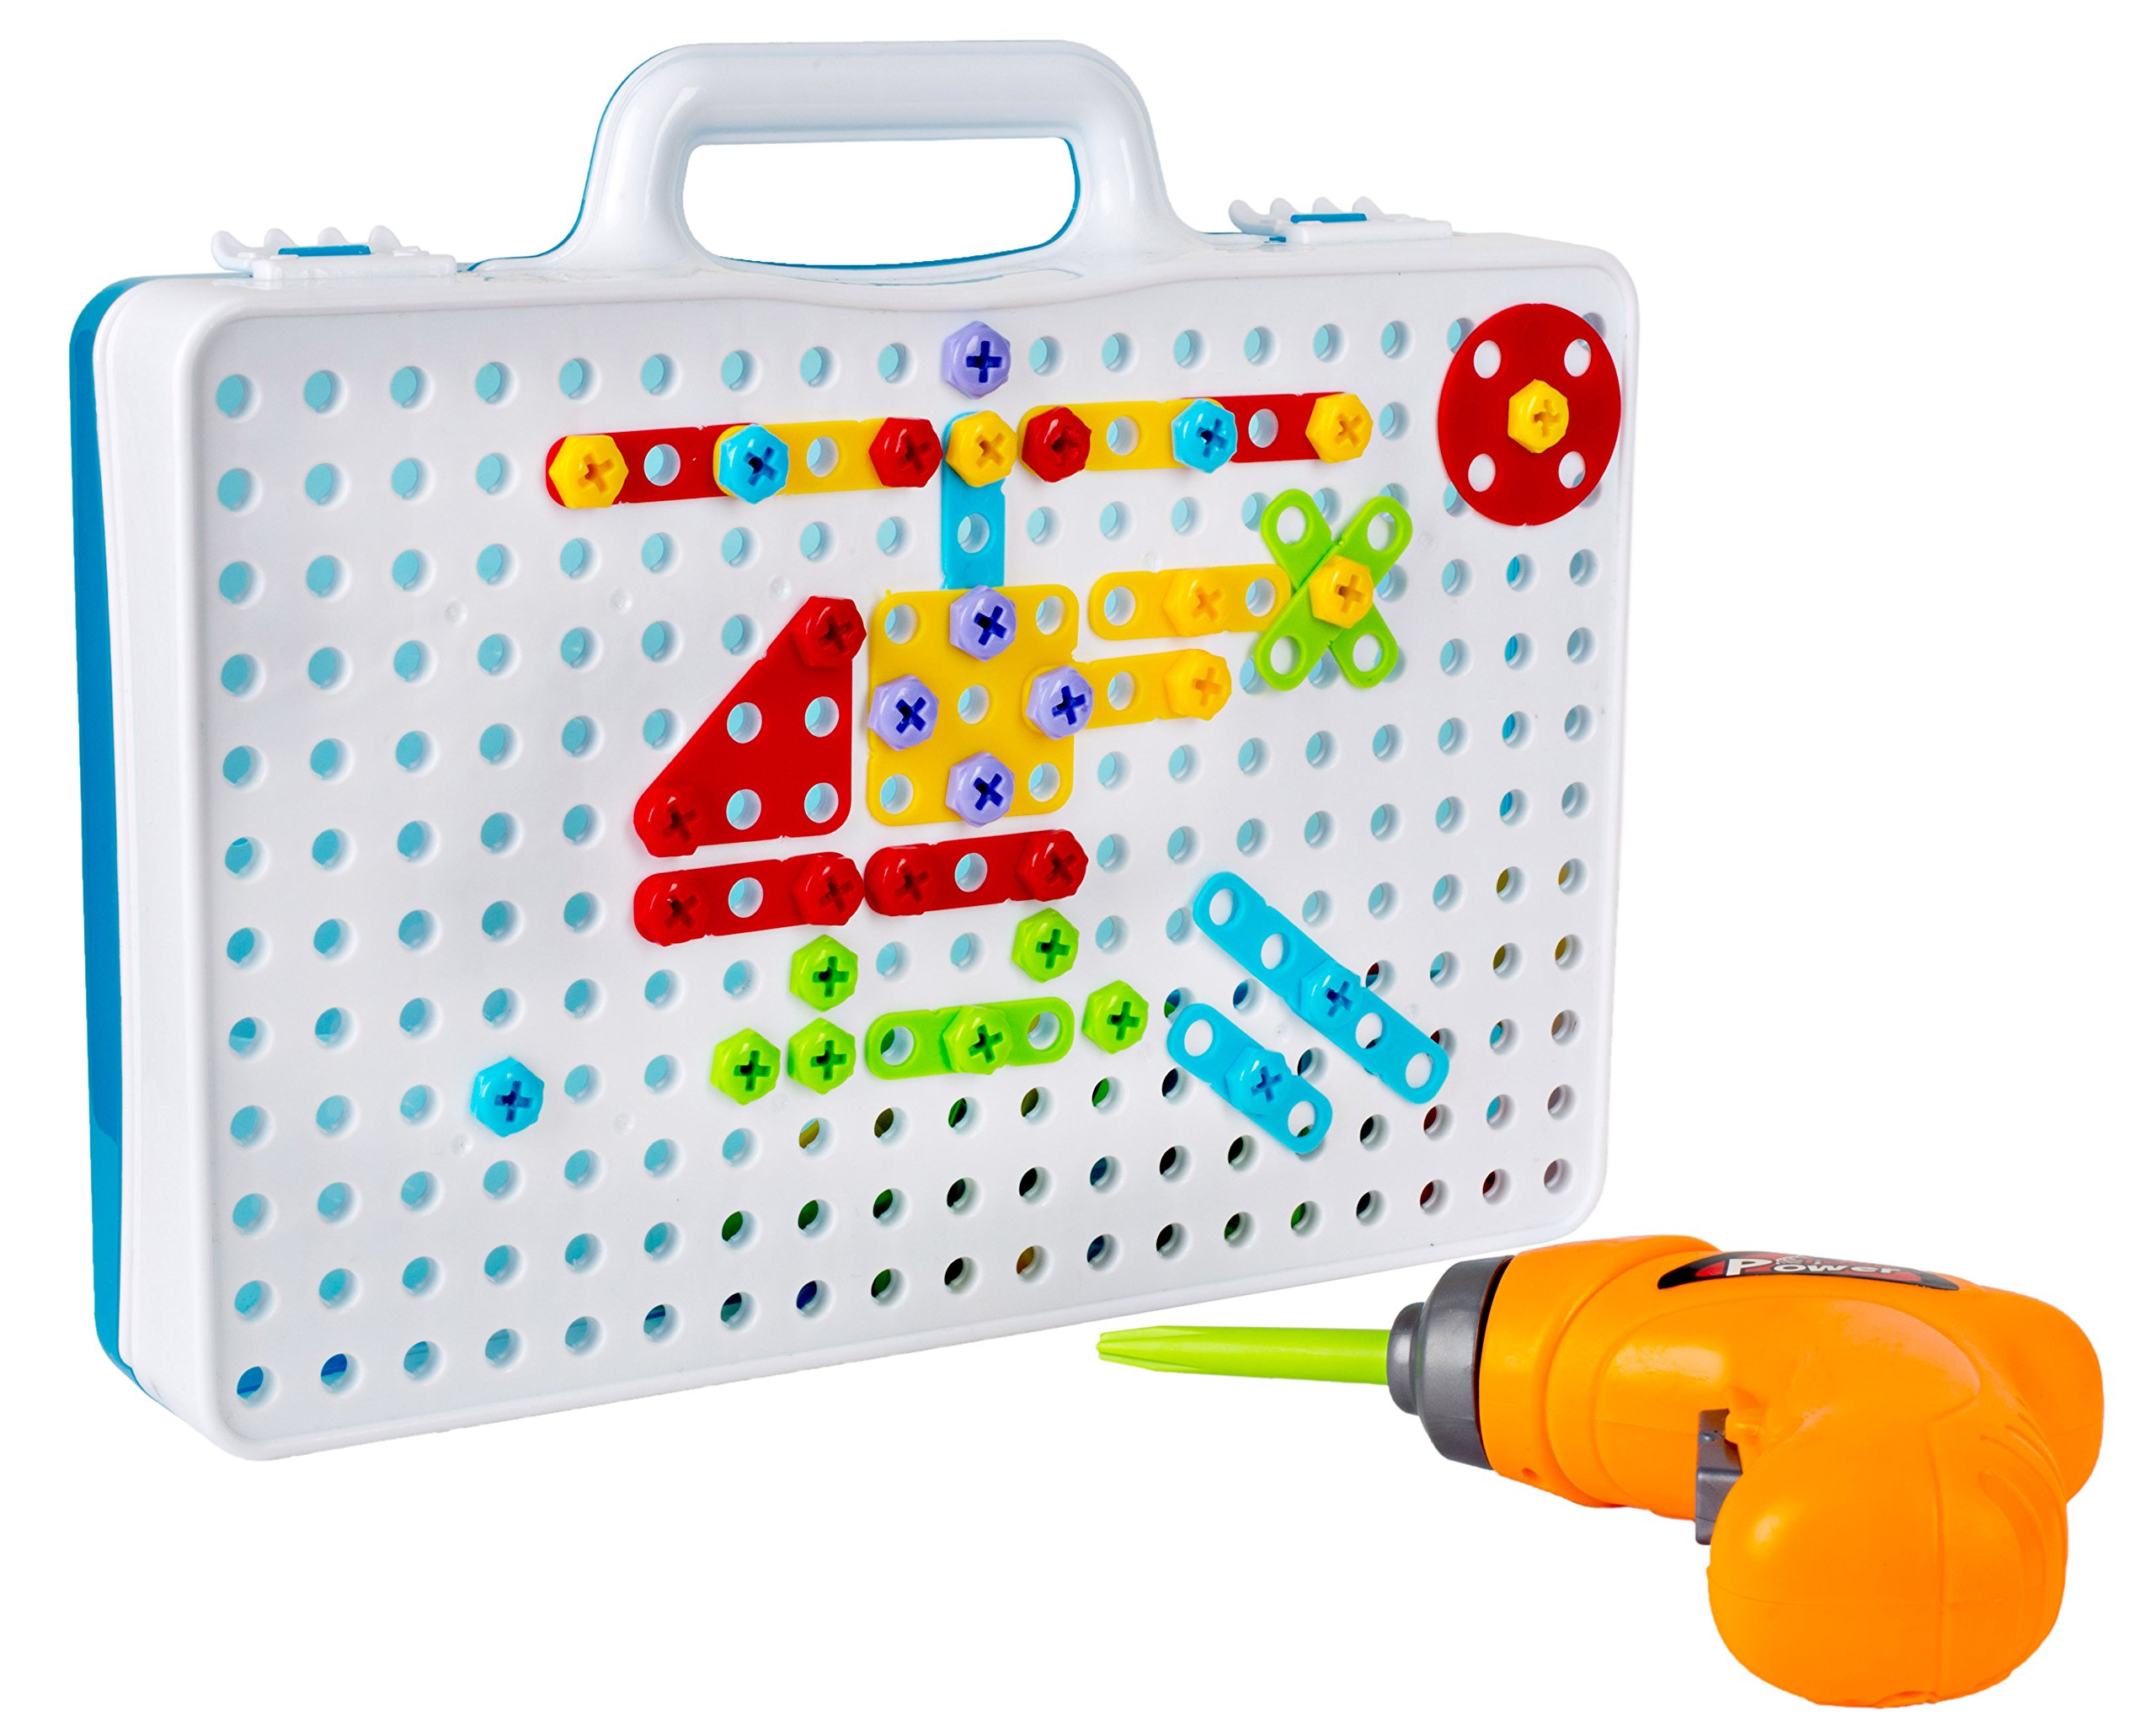 Drill & Play Creative Educational Toy With Real Toy Drill - Mosaic Design Building Toys Tool Kit by Big Mo's Toys